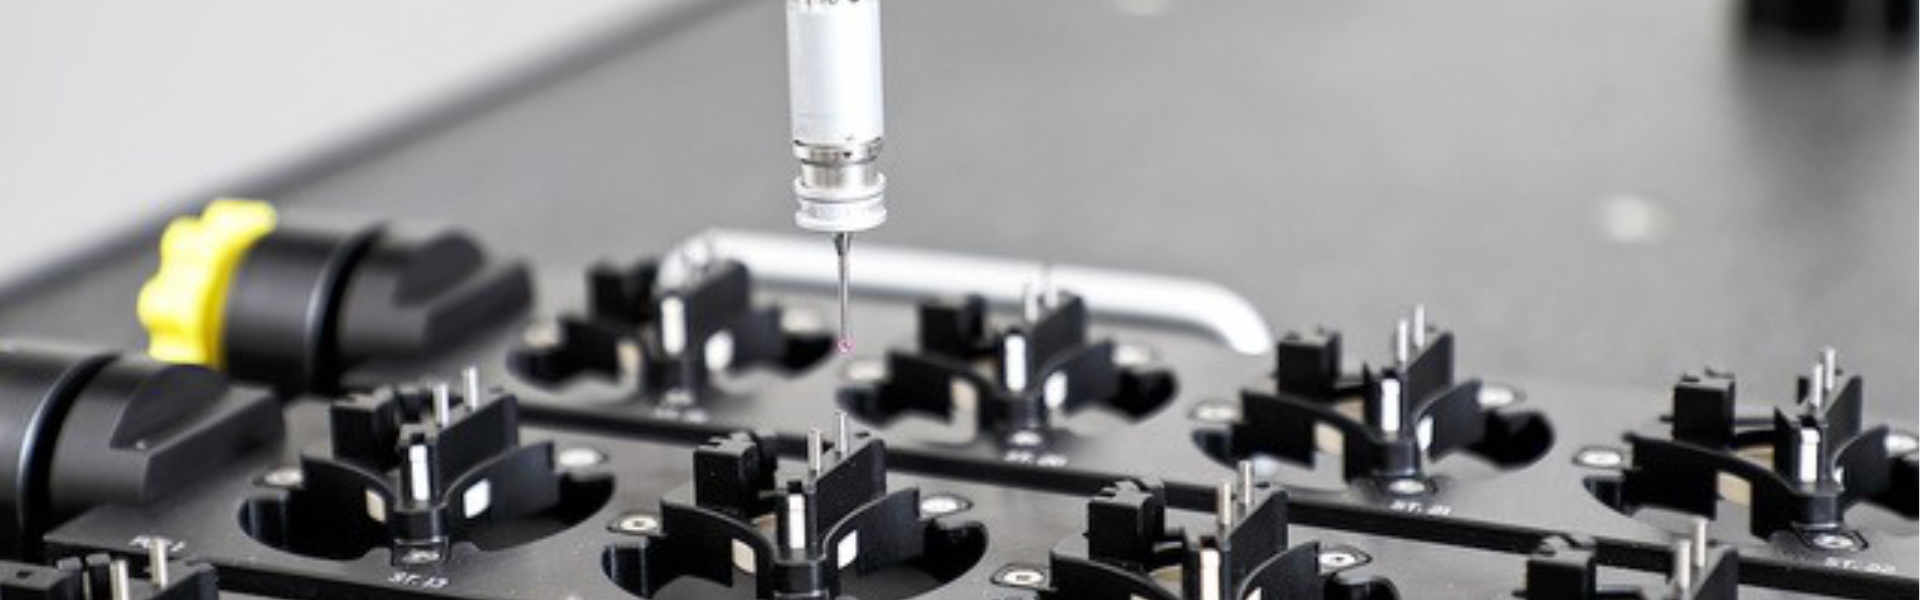 Our metrology services at Verus include dimensional measurement